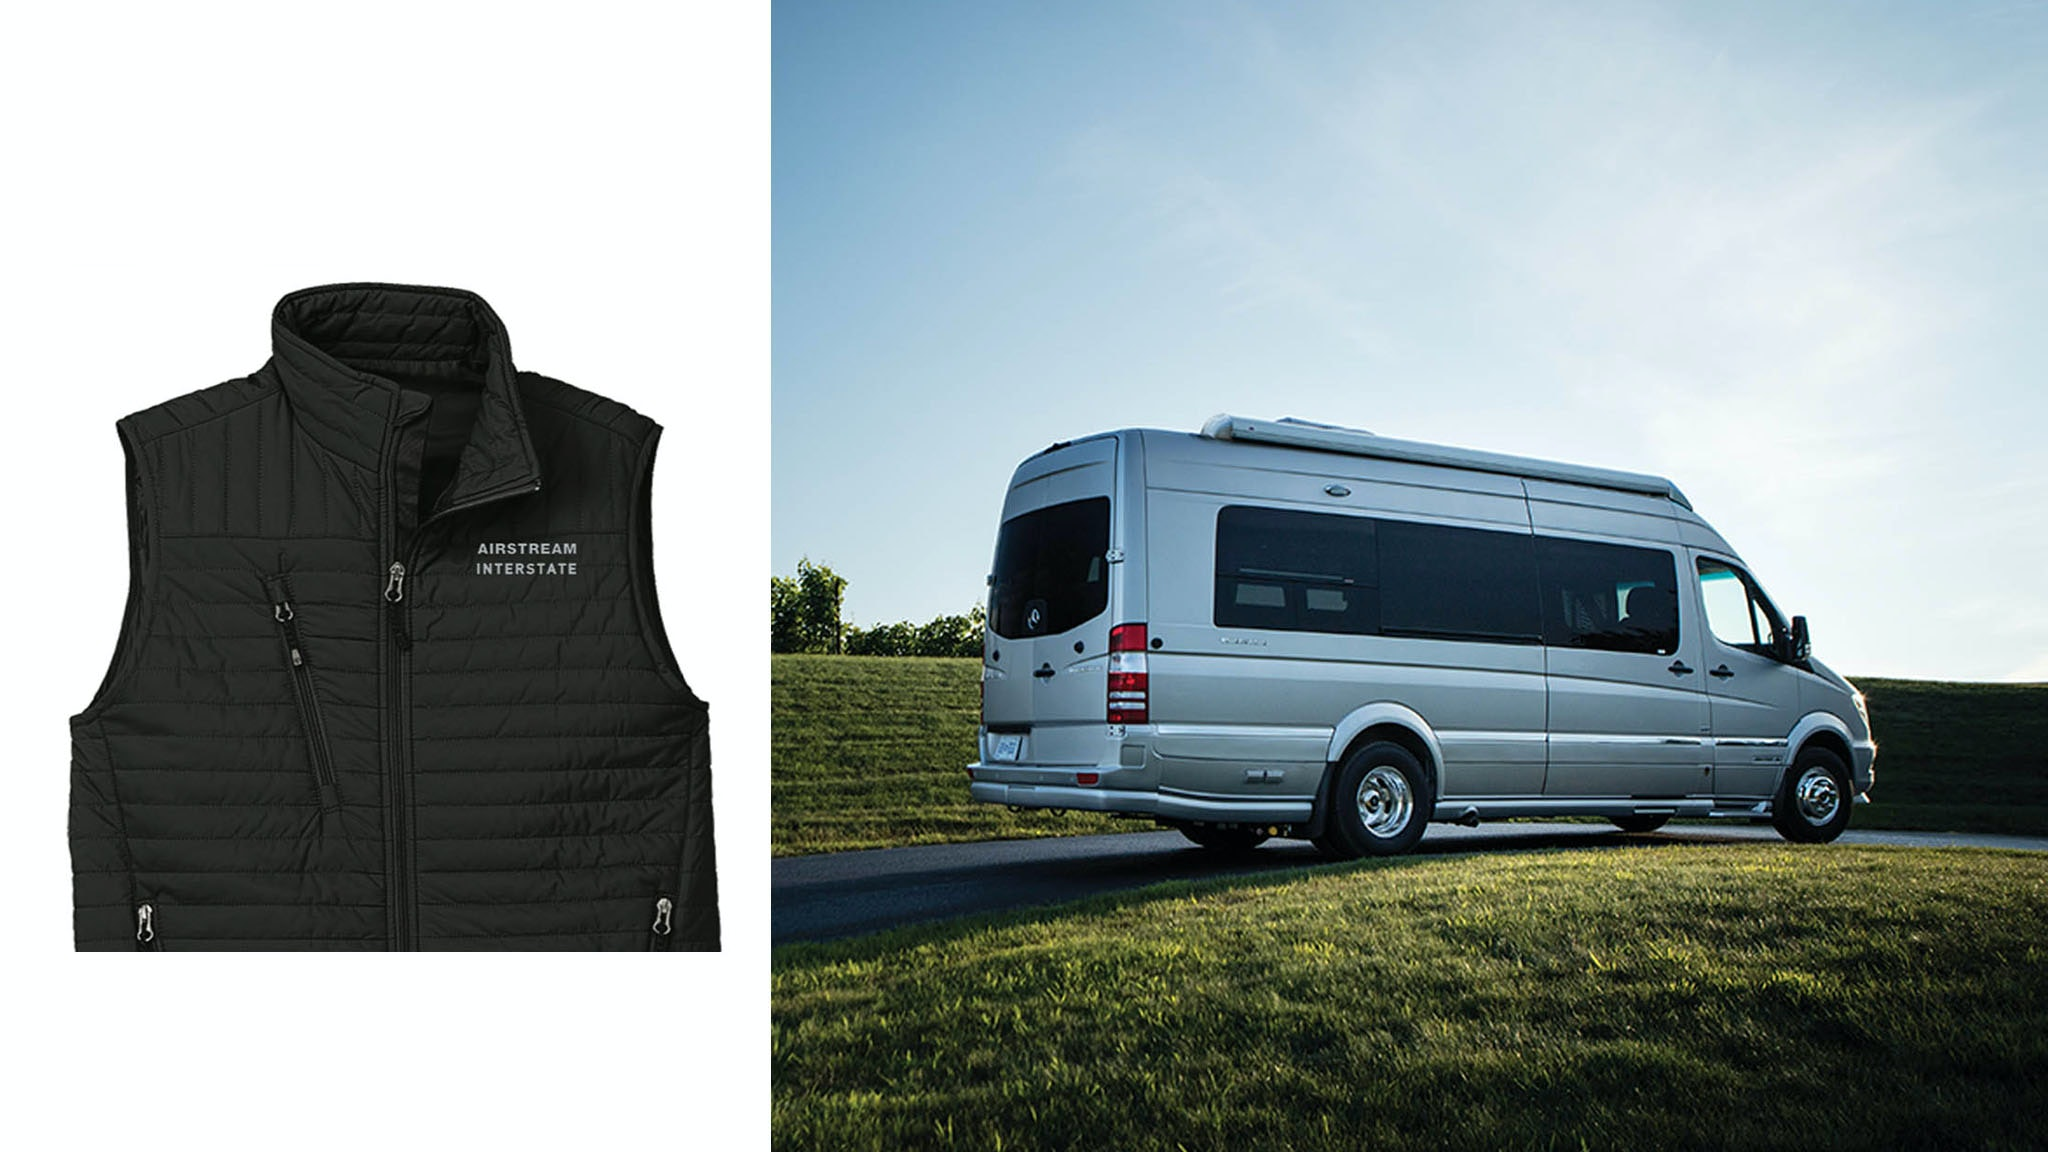 Airstream Interstate and Gear